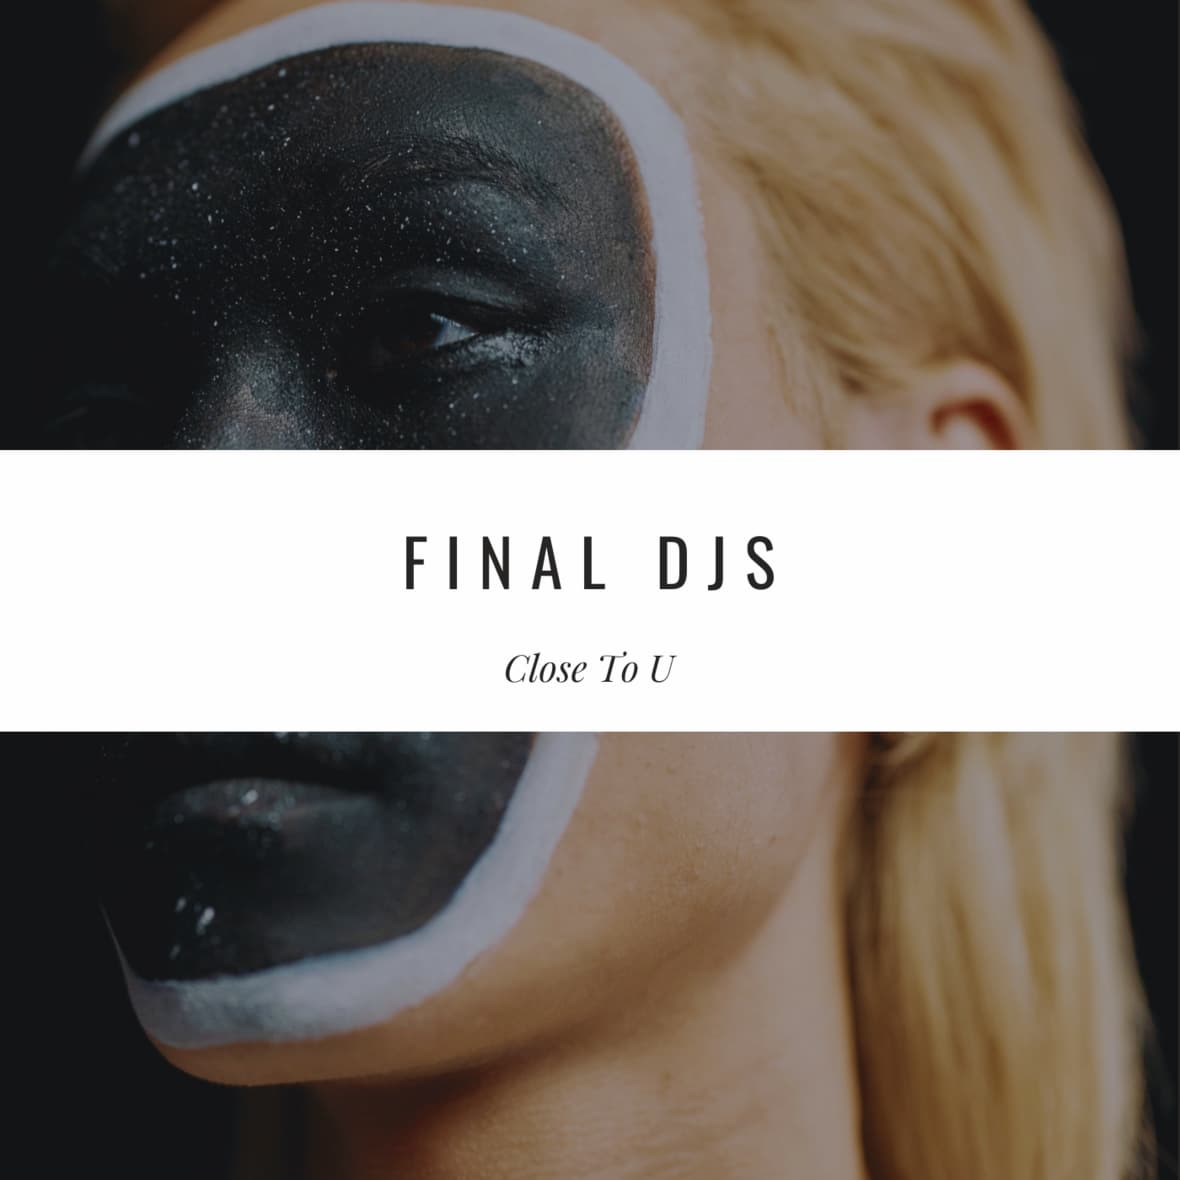 FINAL DJS - Close To U   Song of the Day als Free Download